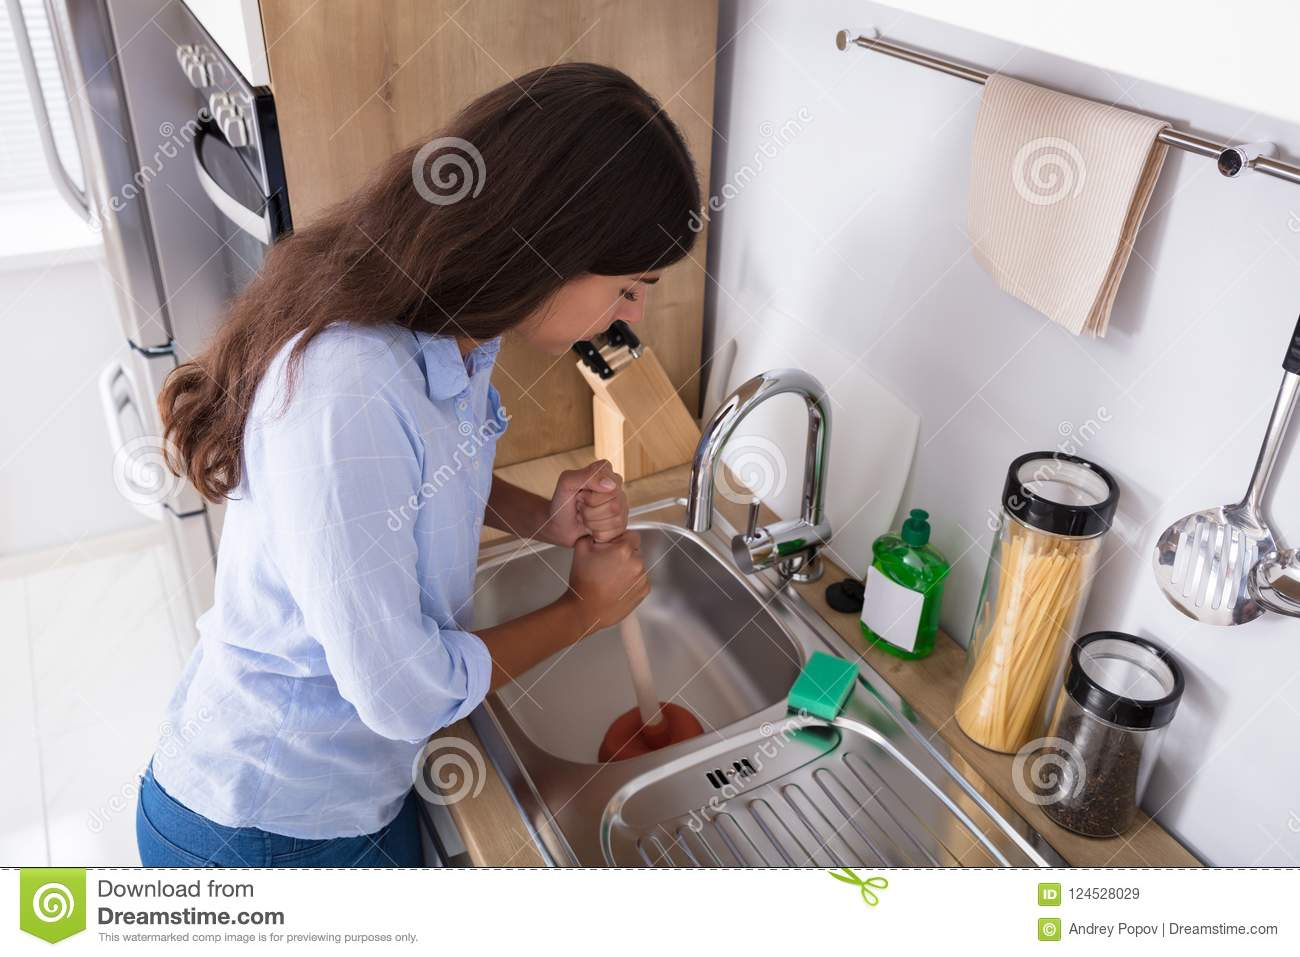 woman using plunger in blocked kitchen sink stock image image of rh dreamstime com toilet plunger kitchen sink toilet plunger kitchen sink